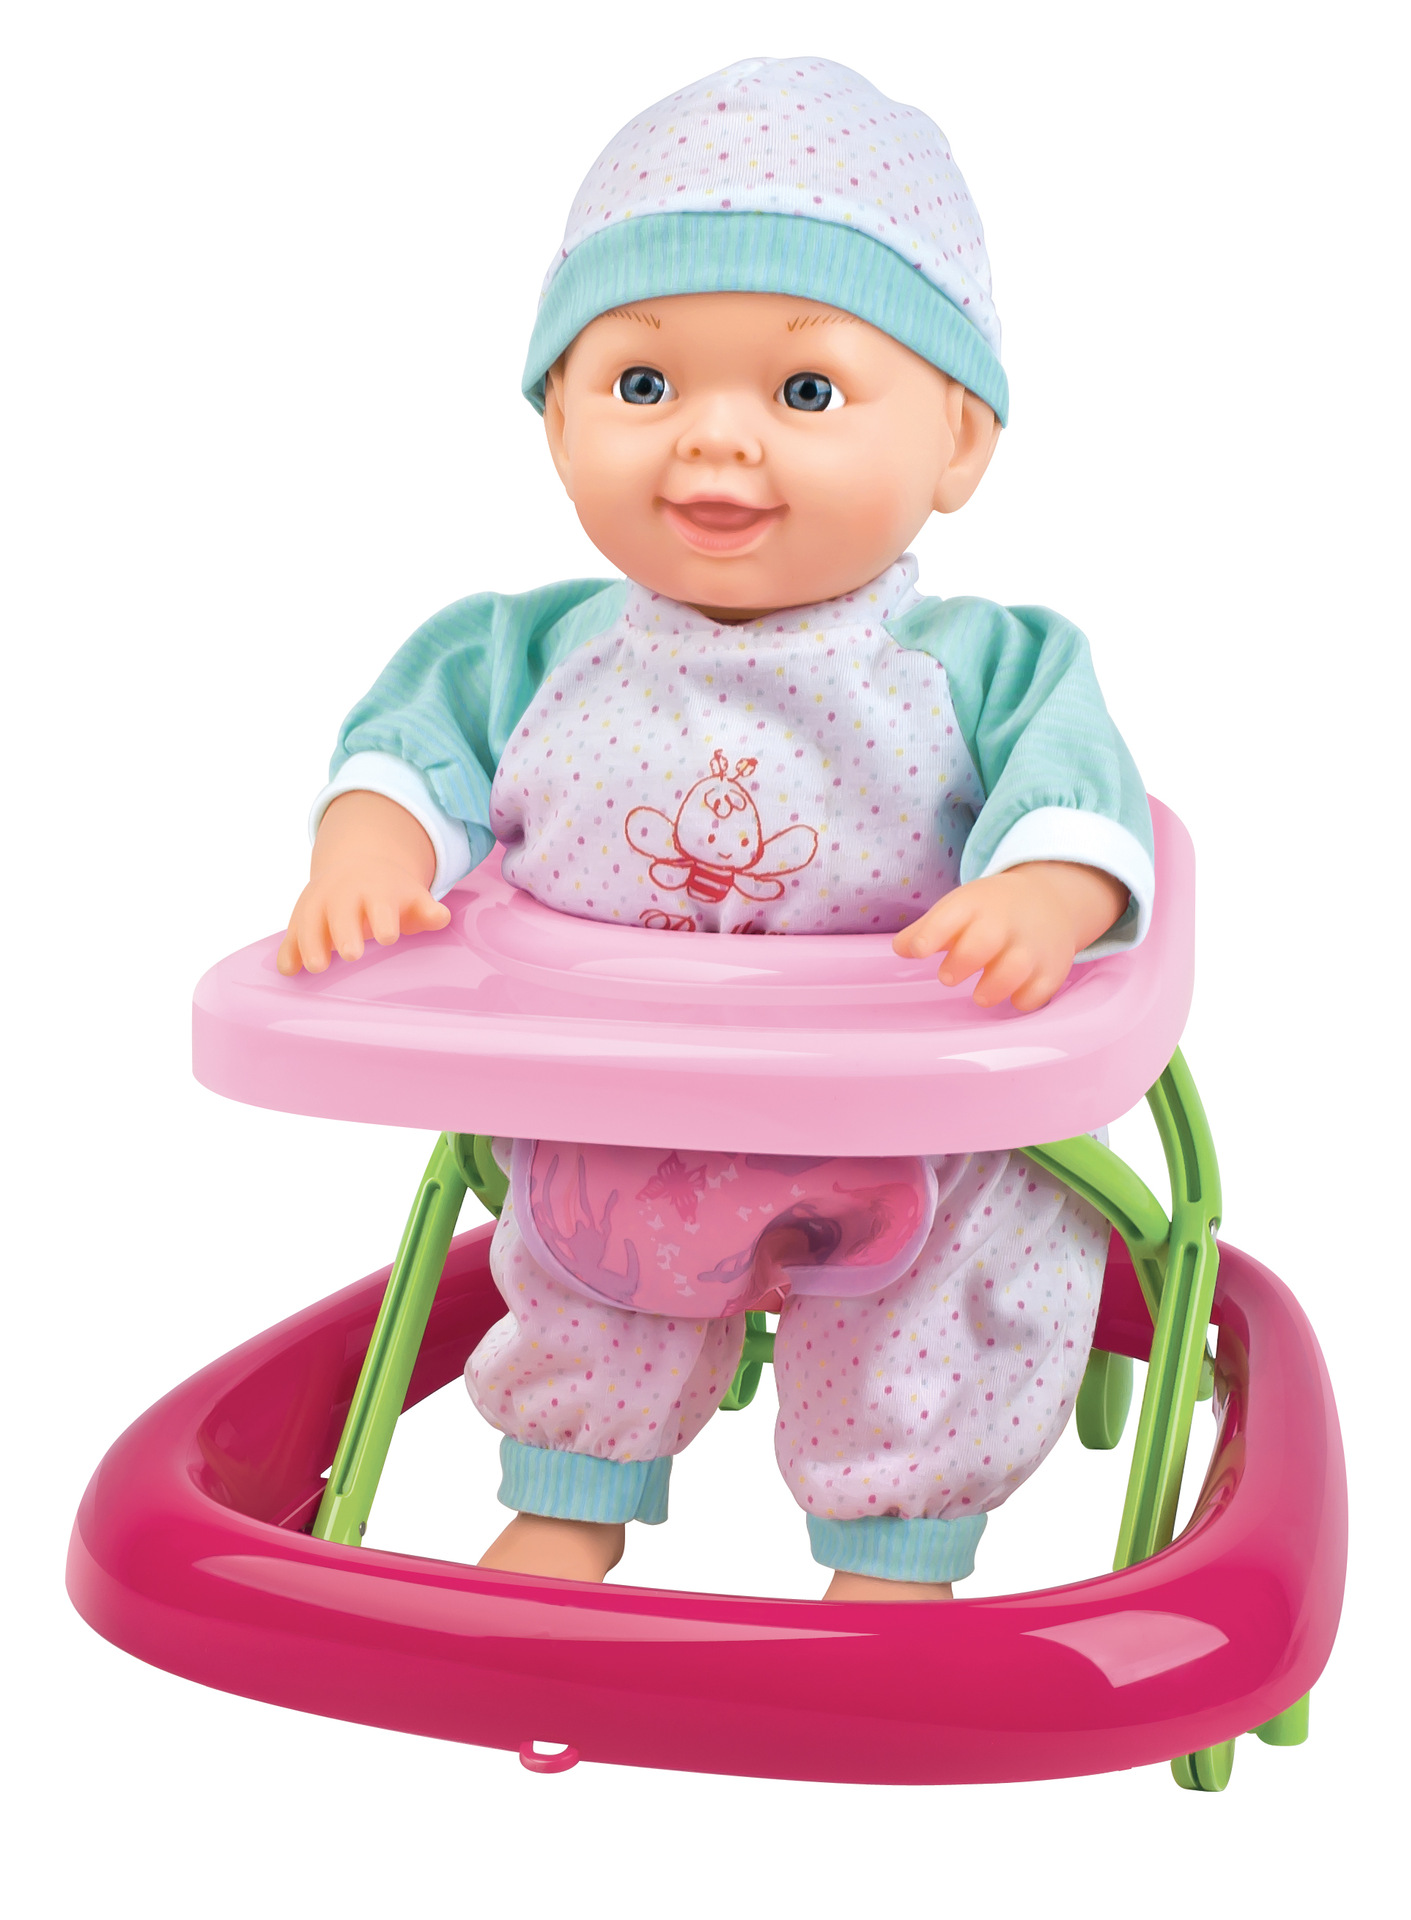 Toy Baby Doll : Popular baby doll toy walker buy cheap